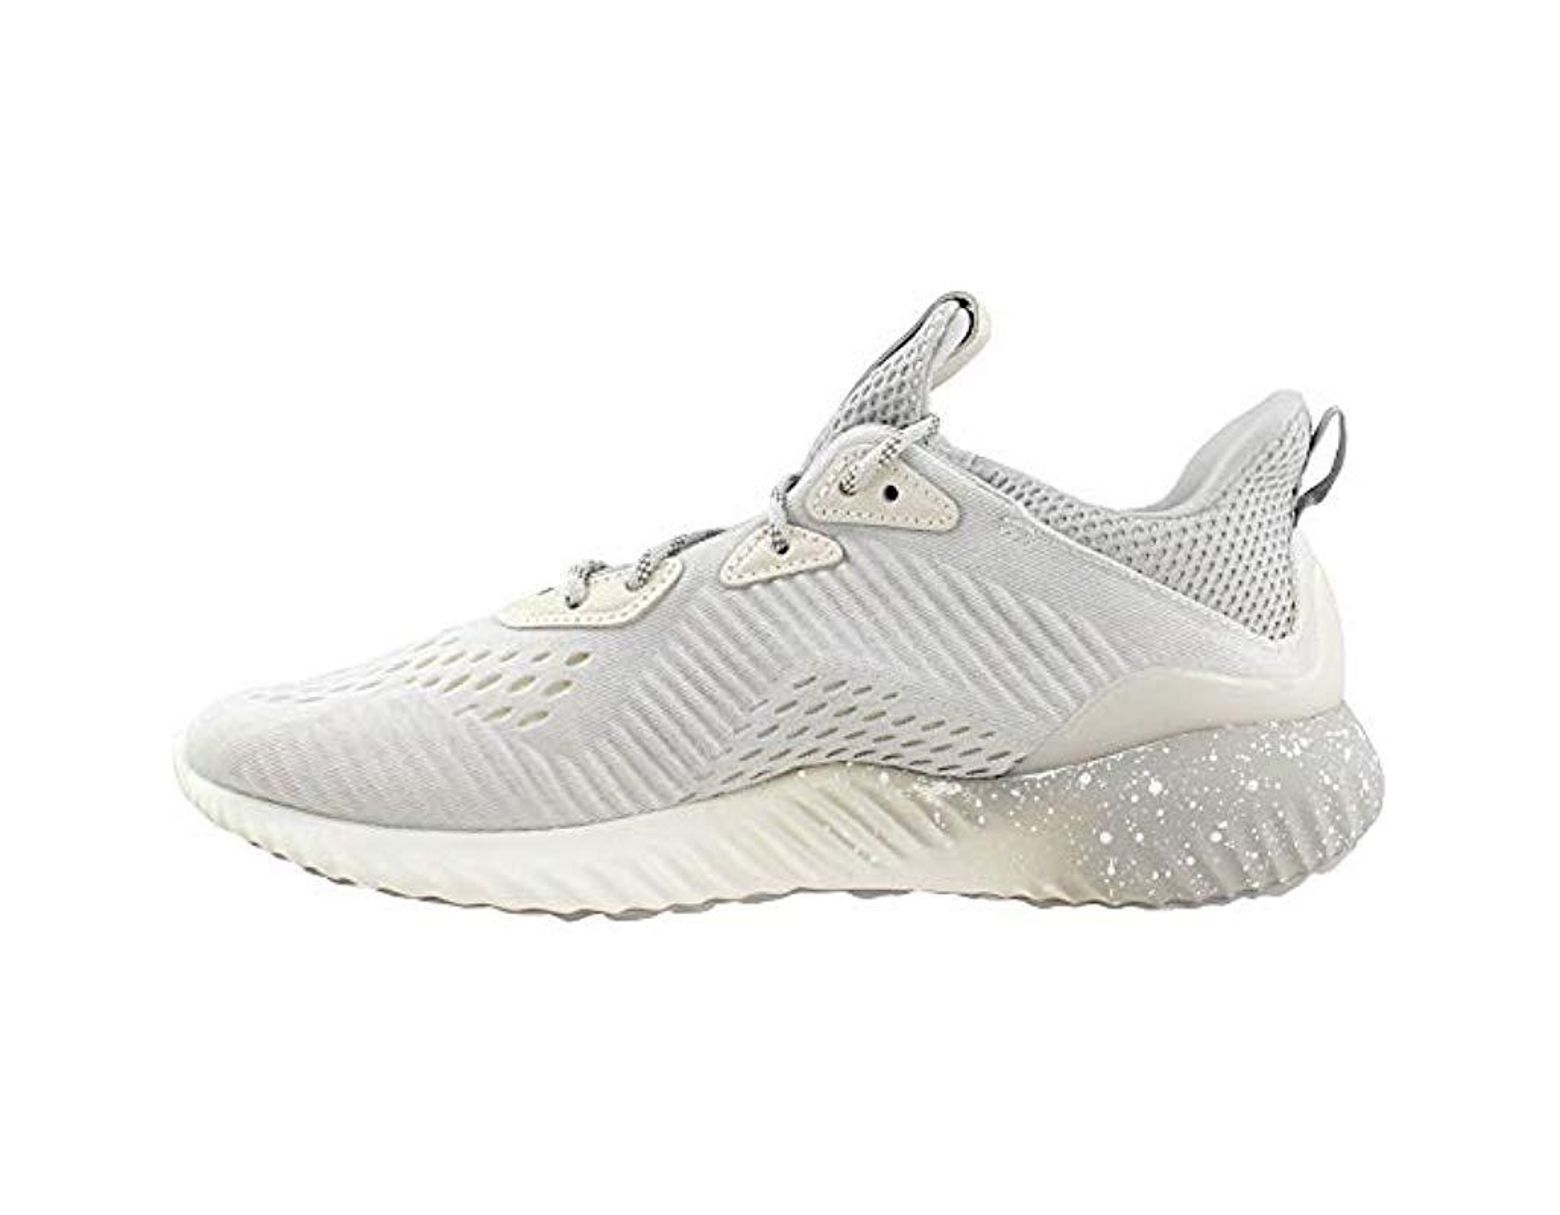 6d90a0c03aea6 Men's White Alphabounce 1 Reigning Champ M Running Shoe